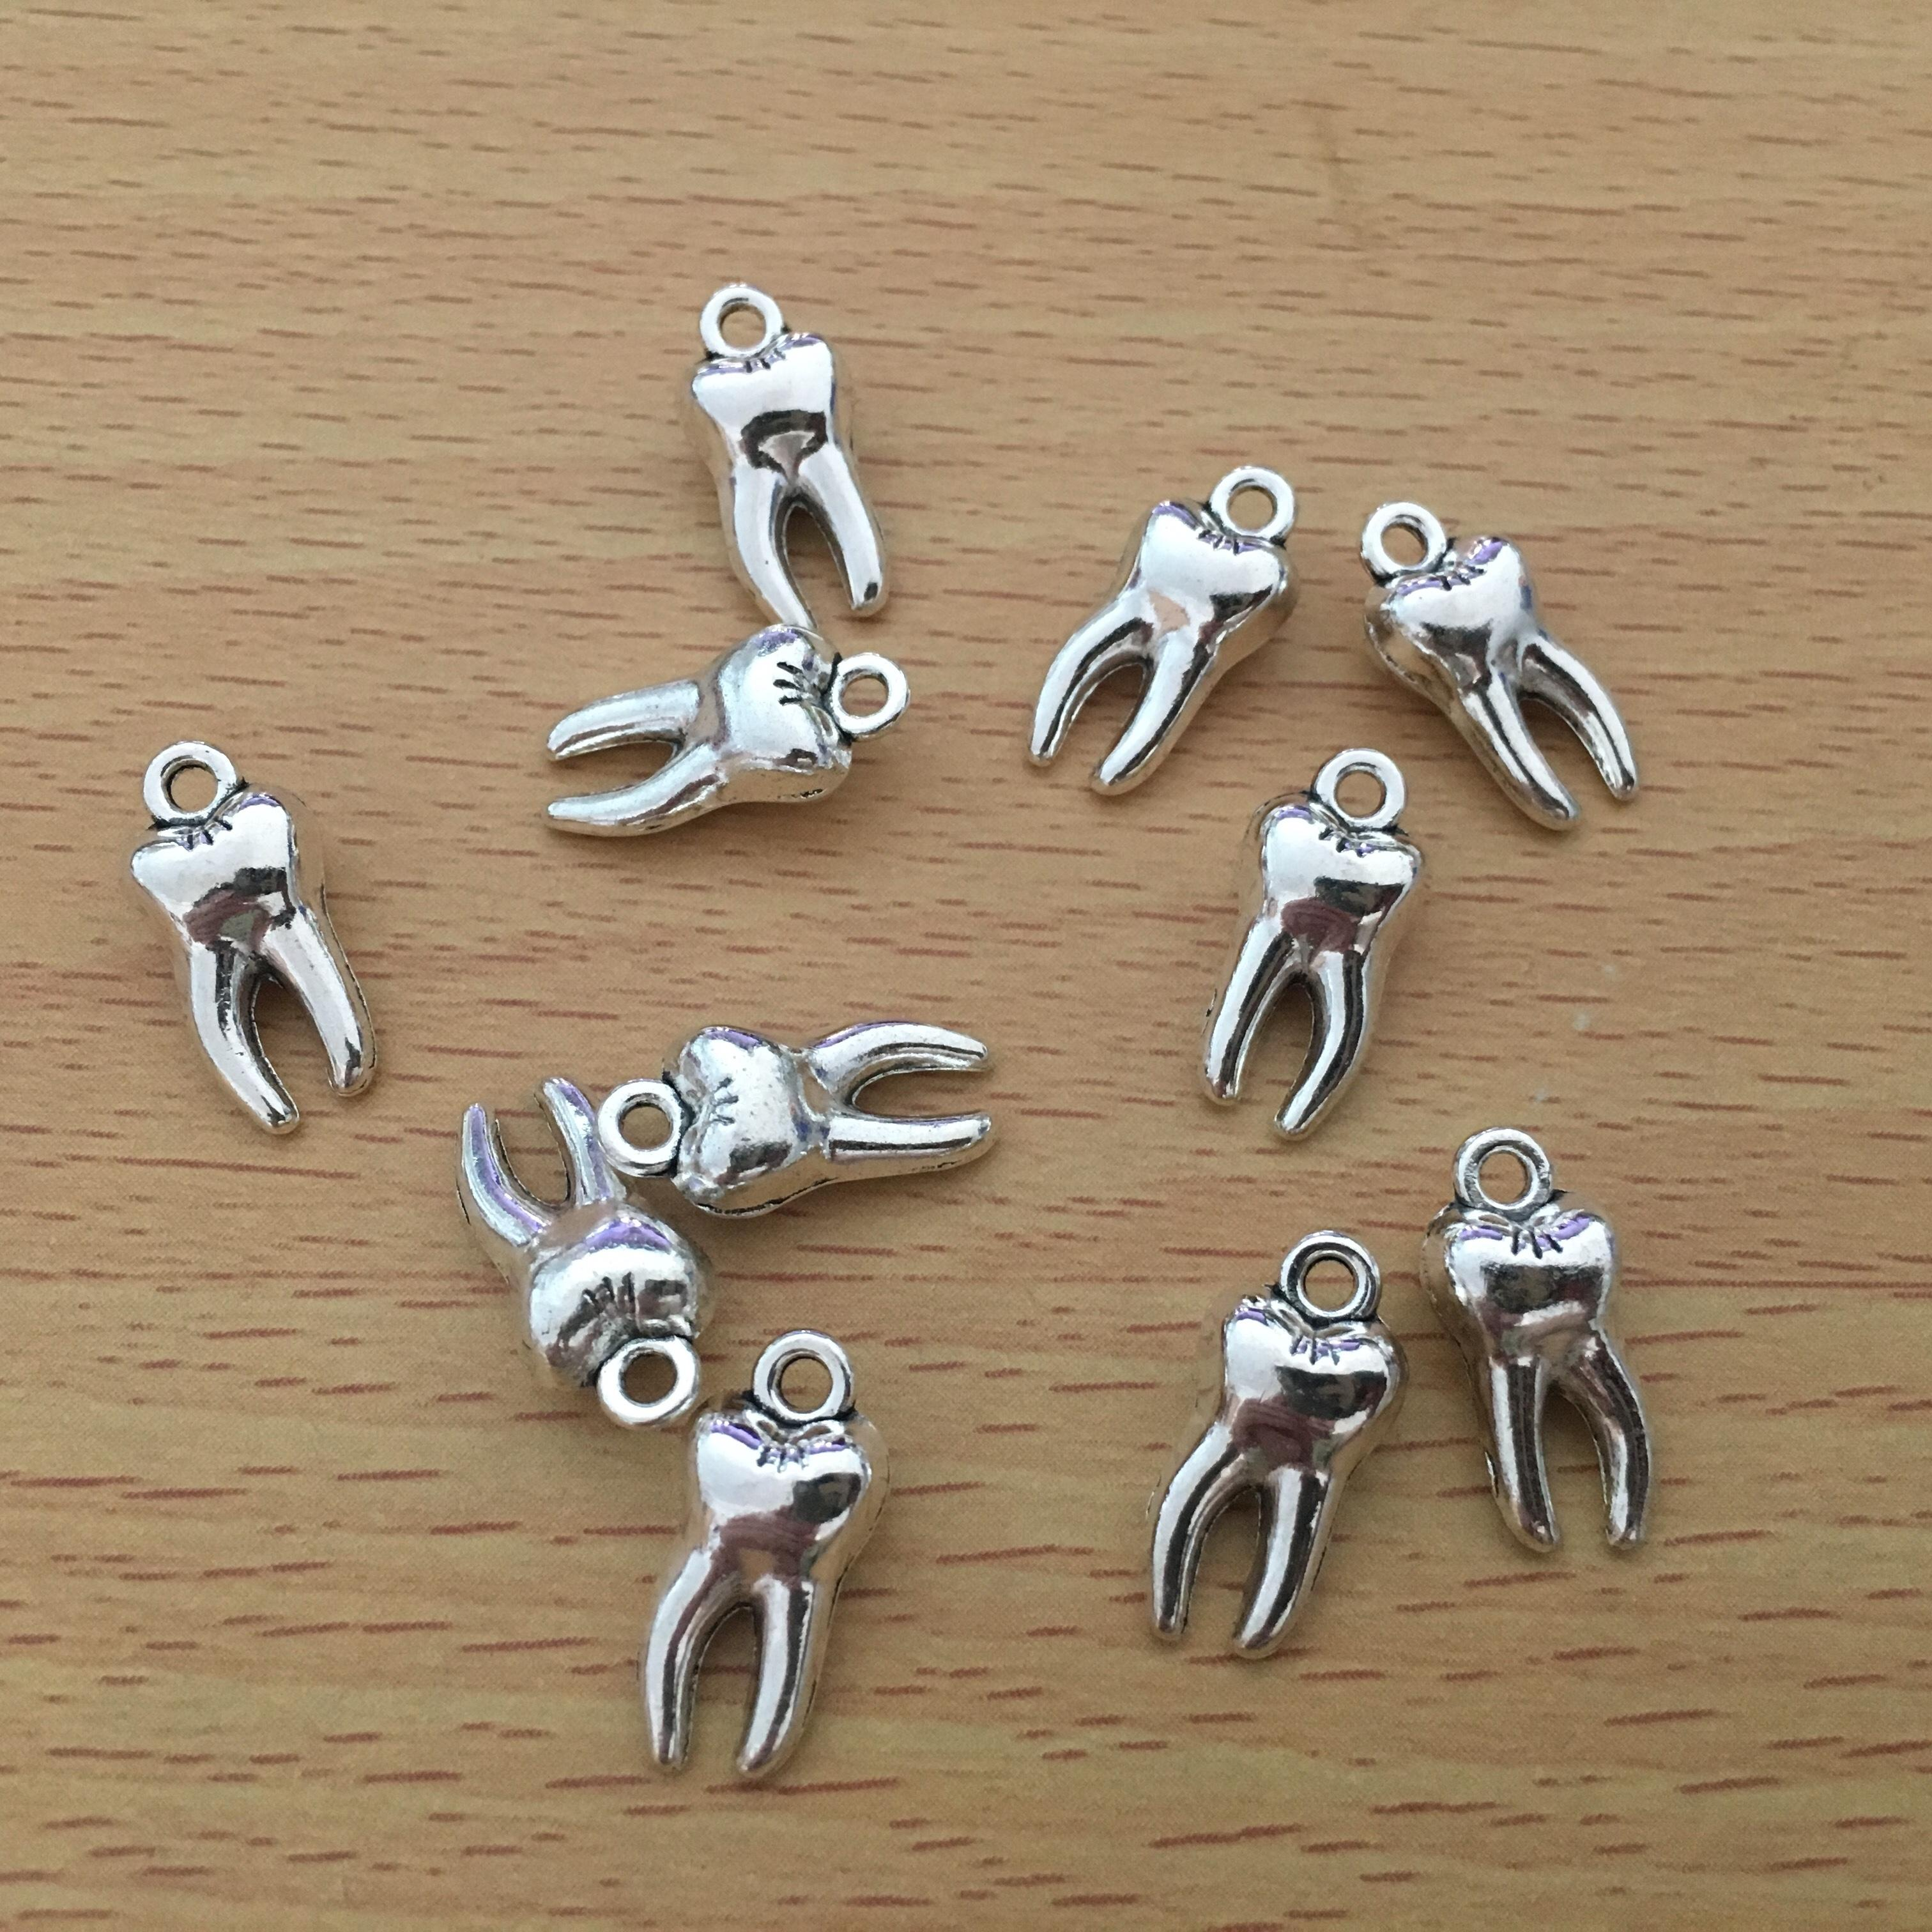 Charms Jewelry & Accessories 25*22mm Vintage Silver Crystal Horse Charm Pendant Jewlery Findings Charm Pendants For Bracelet Necklace Jewelry Making Handmade